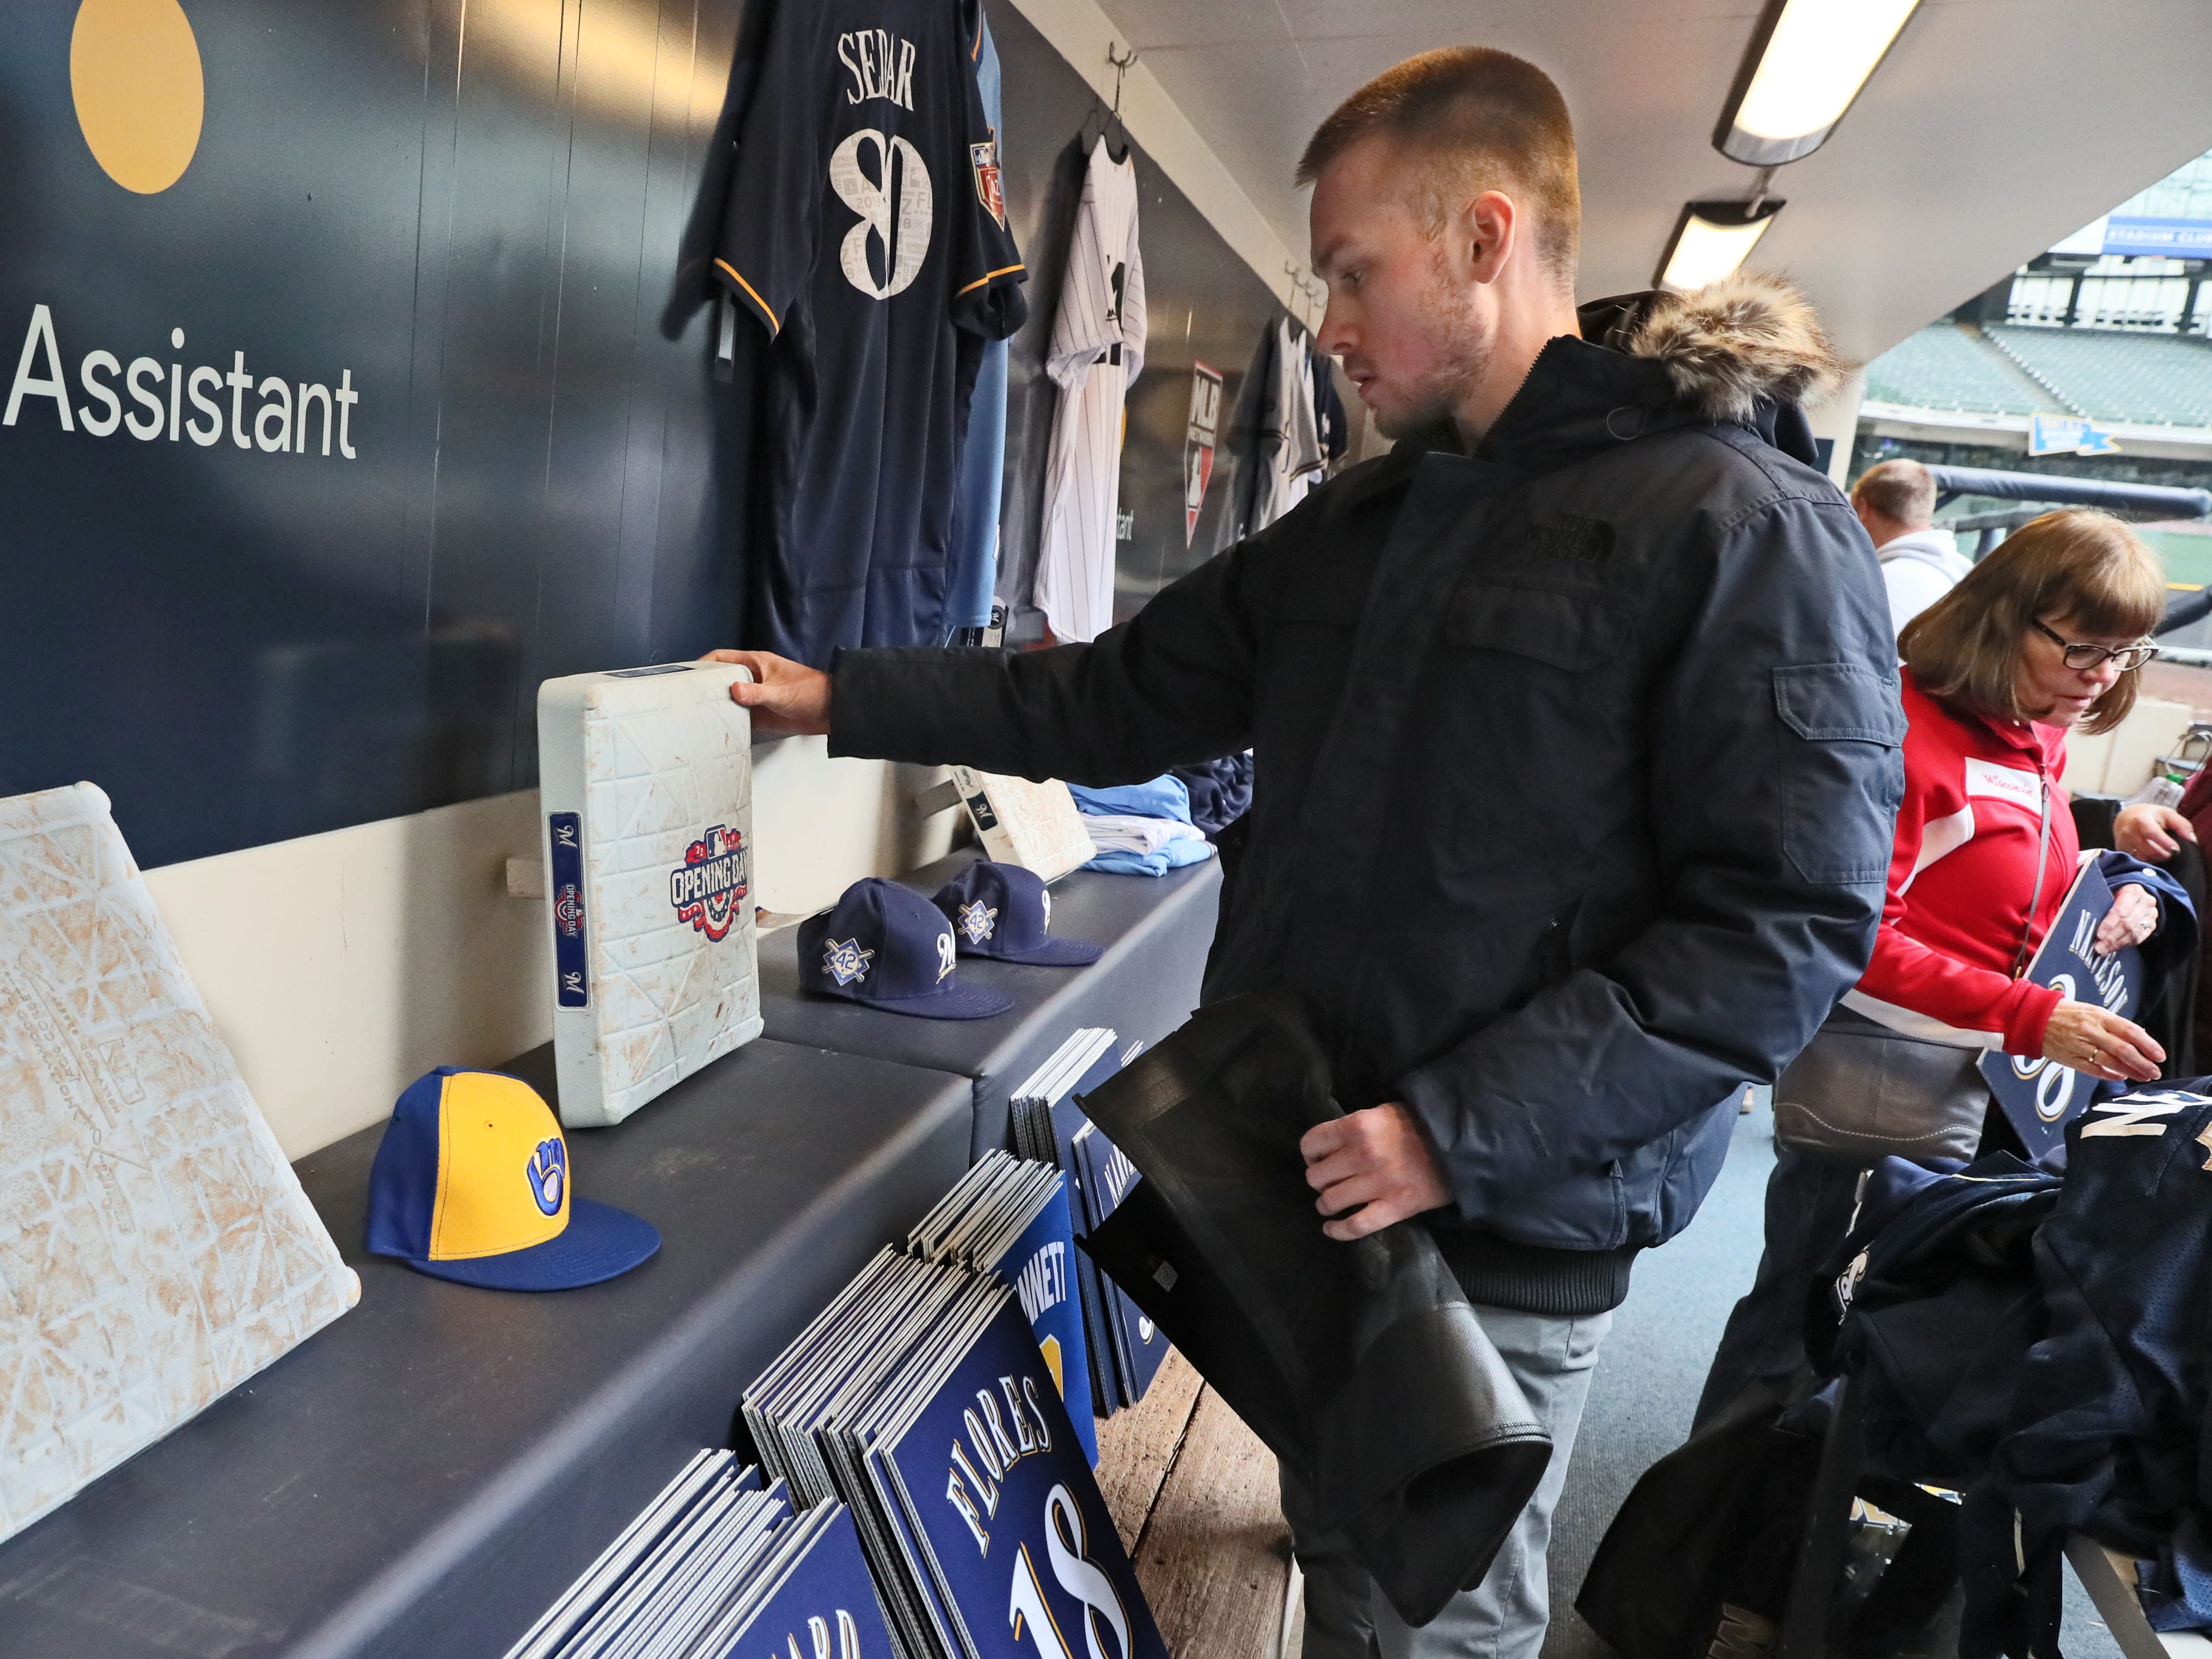 Michael Theile of Milwaukee looks over a third base that was used on opening day that is for sale. The Milwaukee Brewers are having their two-day annual clubhouse sale in the visitors' clubhouse and dugout. Hours are 8 a.m. to 8 p.m. Friday and Saturday.